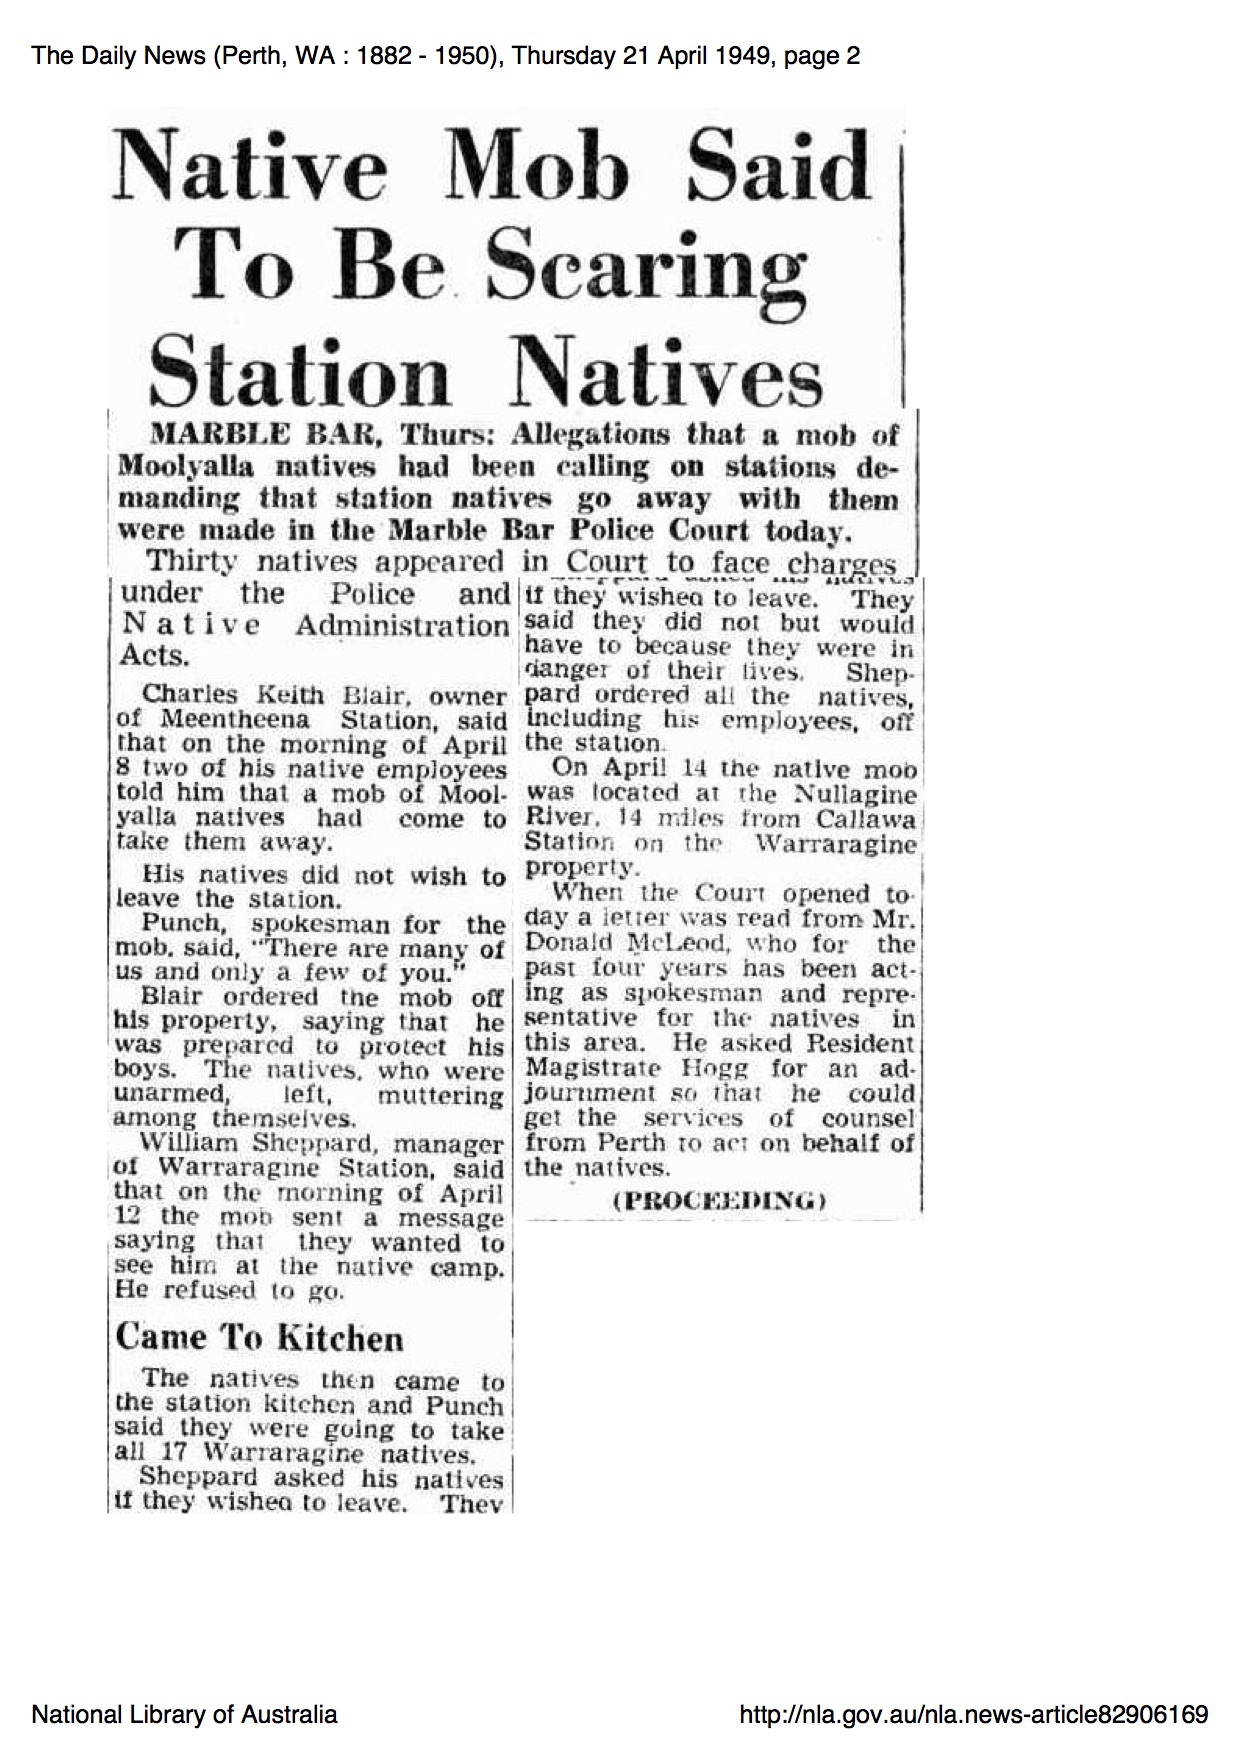 Native Mob Said to be Scaring Station Natives newspaper article